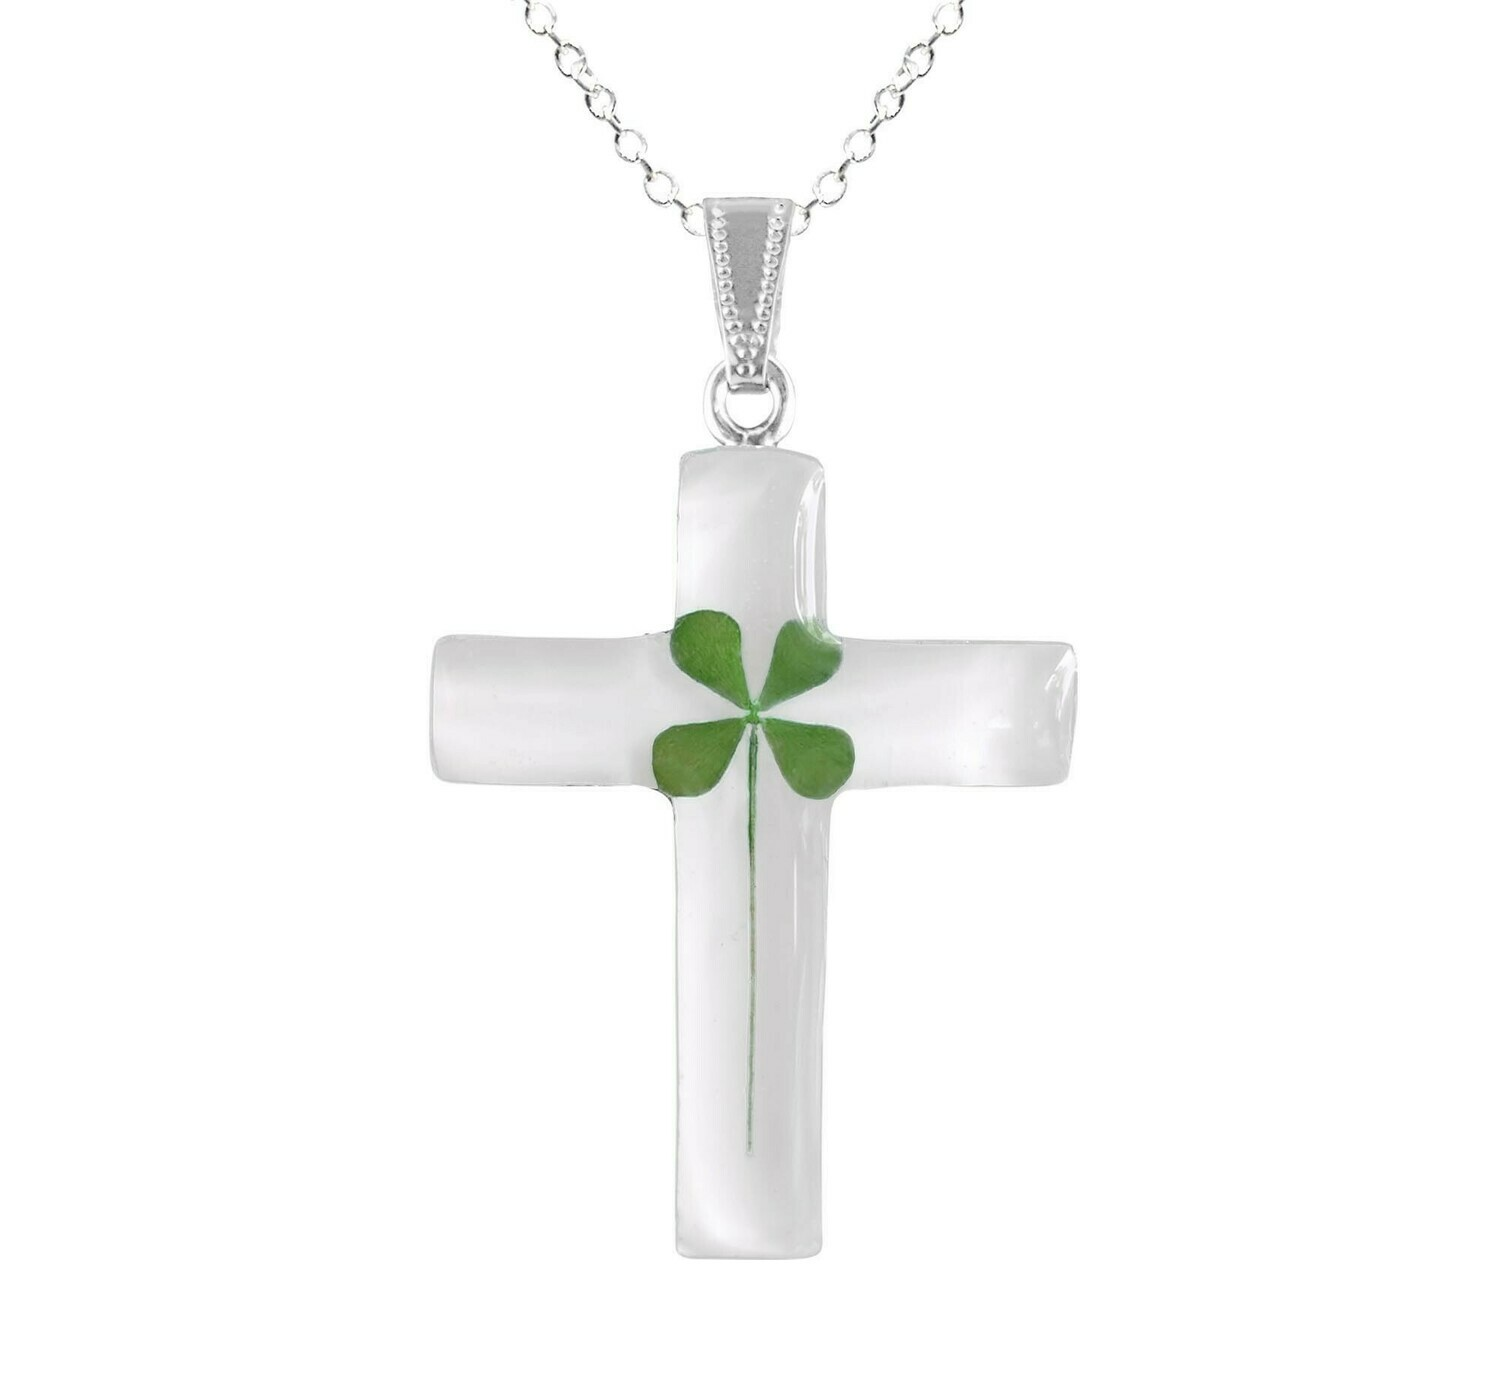 Clover Necklace, Large Cross, Black Background